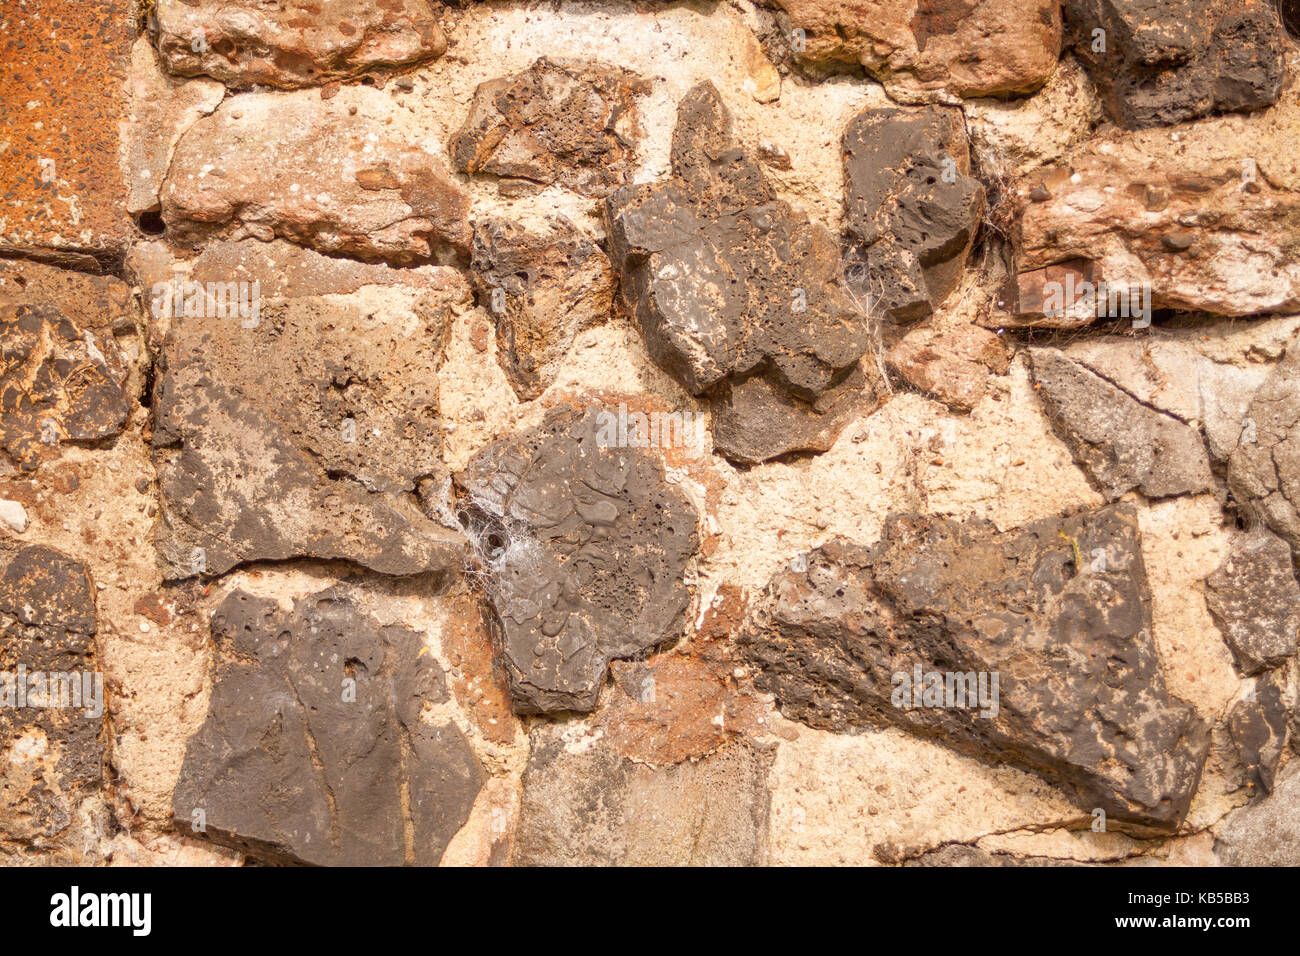 Stone on the mountain as a backgroung - Stock Image